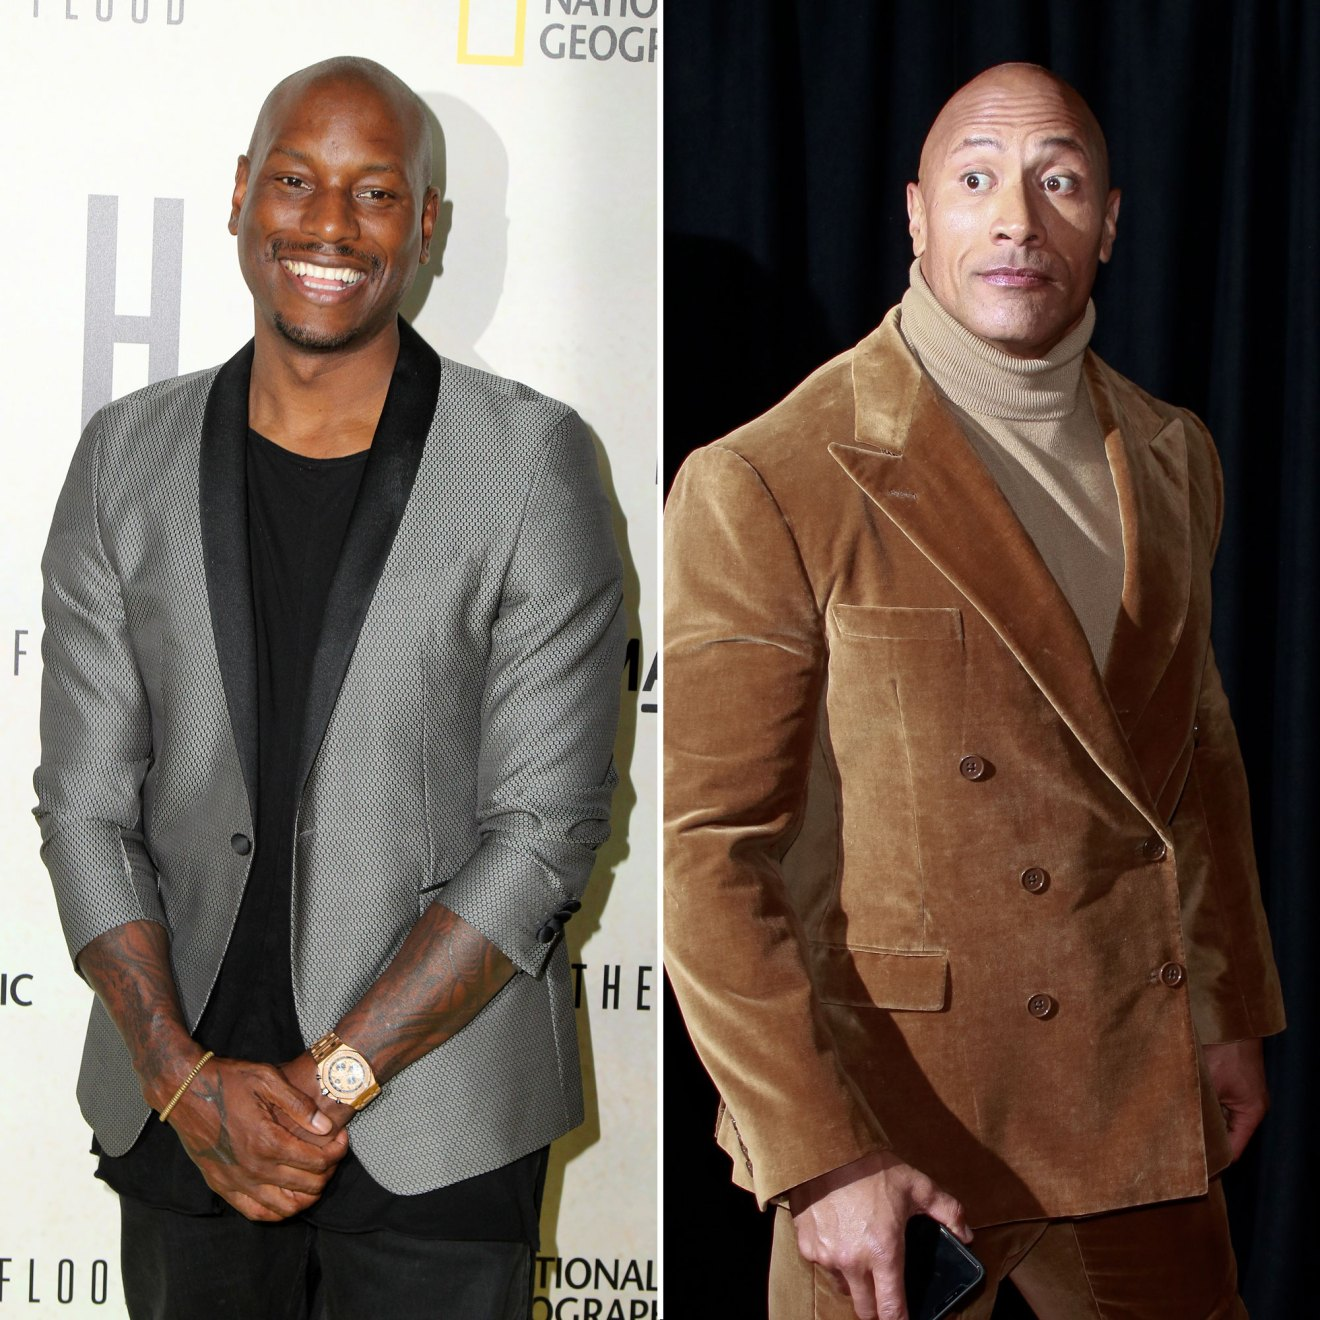 Tyrese Gibson Shades Dwayne Johnson Over Hobbs & Shaw Ticket Sales He Tried